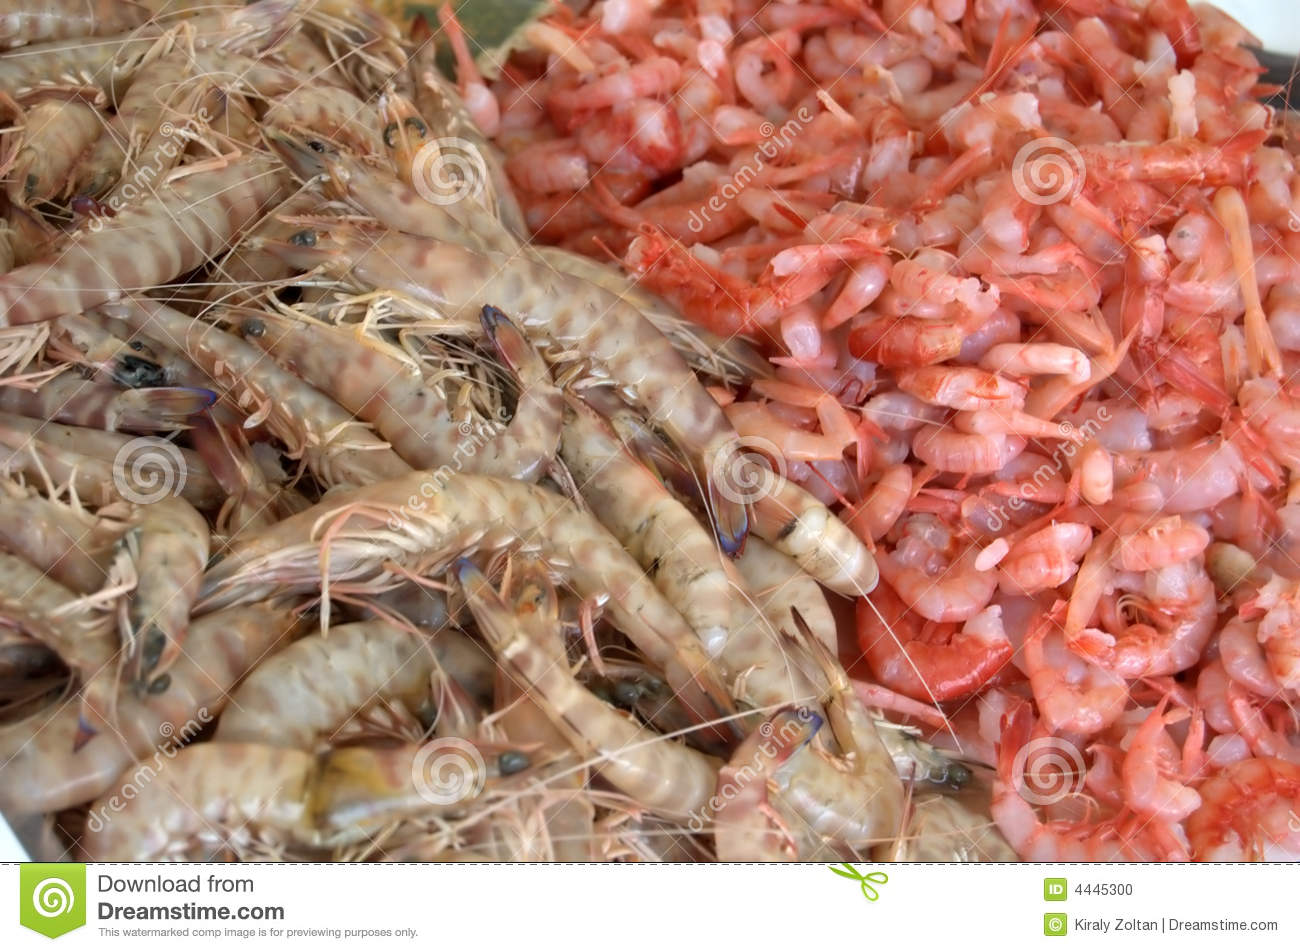 Shrimp And Prawns At Market Stock Photo Image Of Whole Shrimp